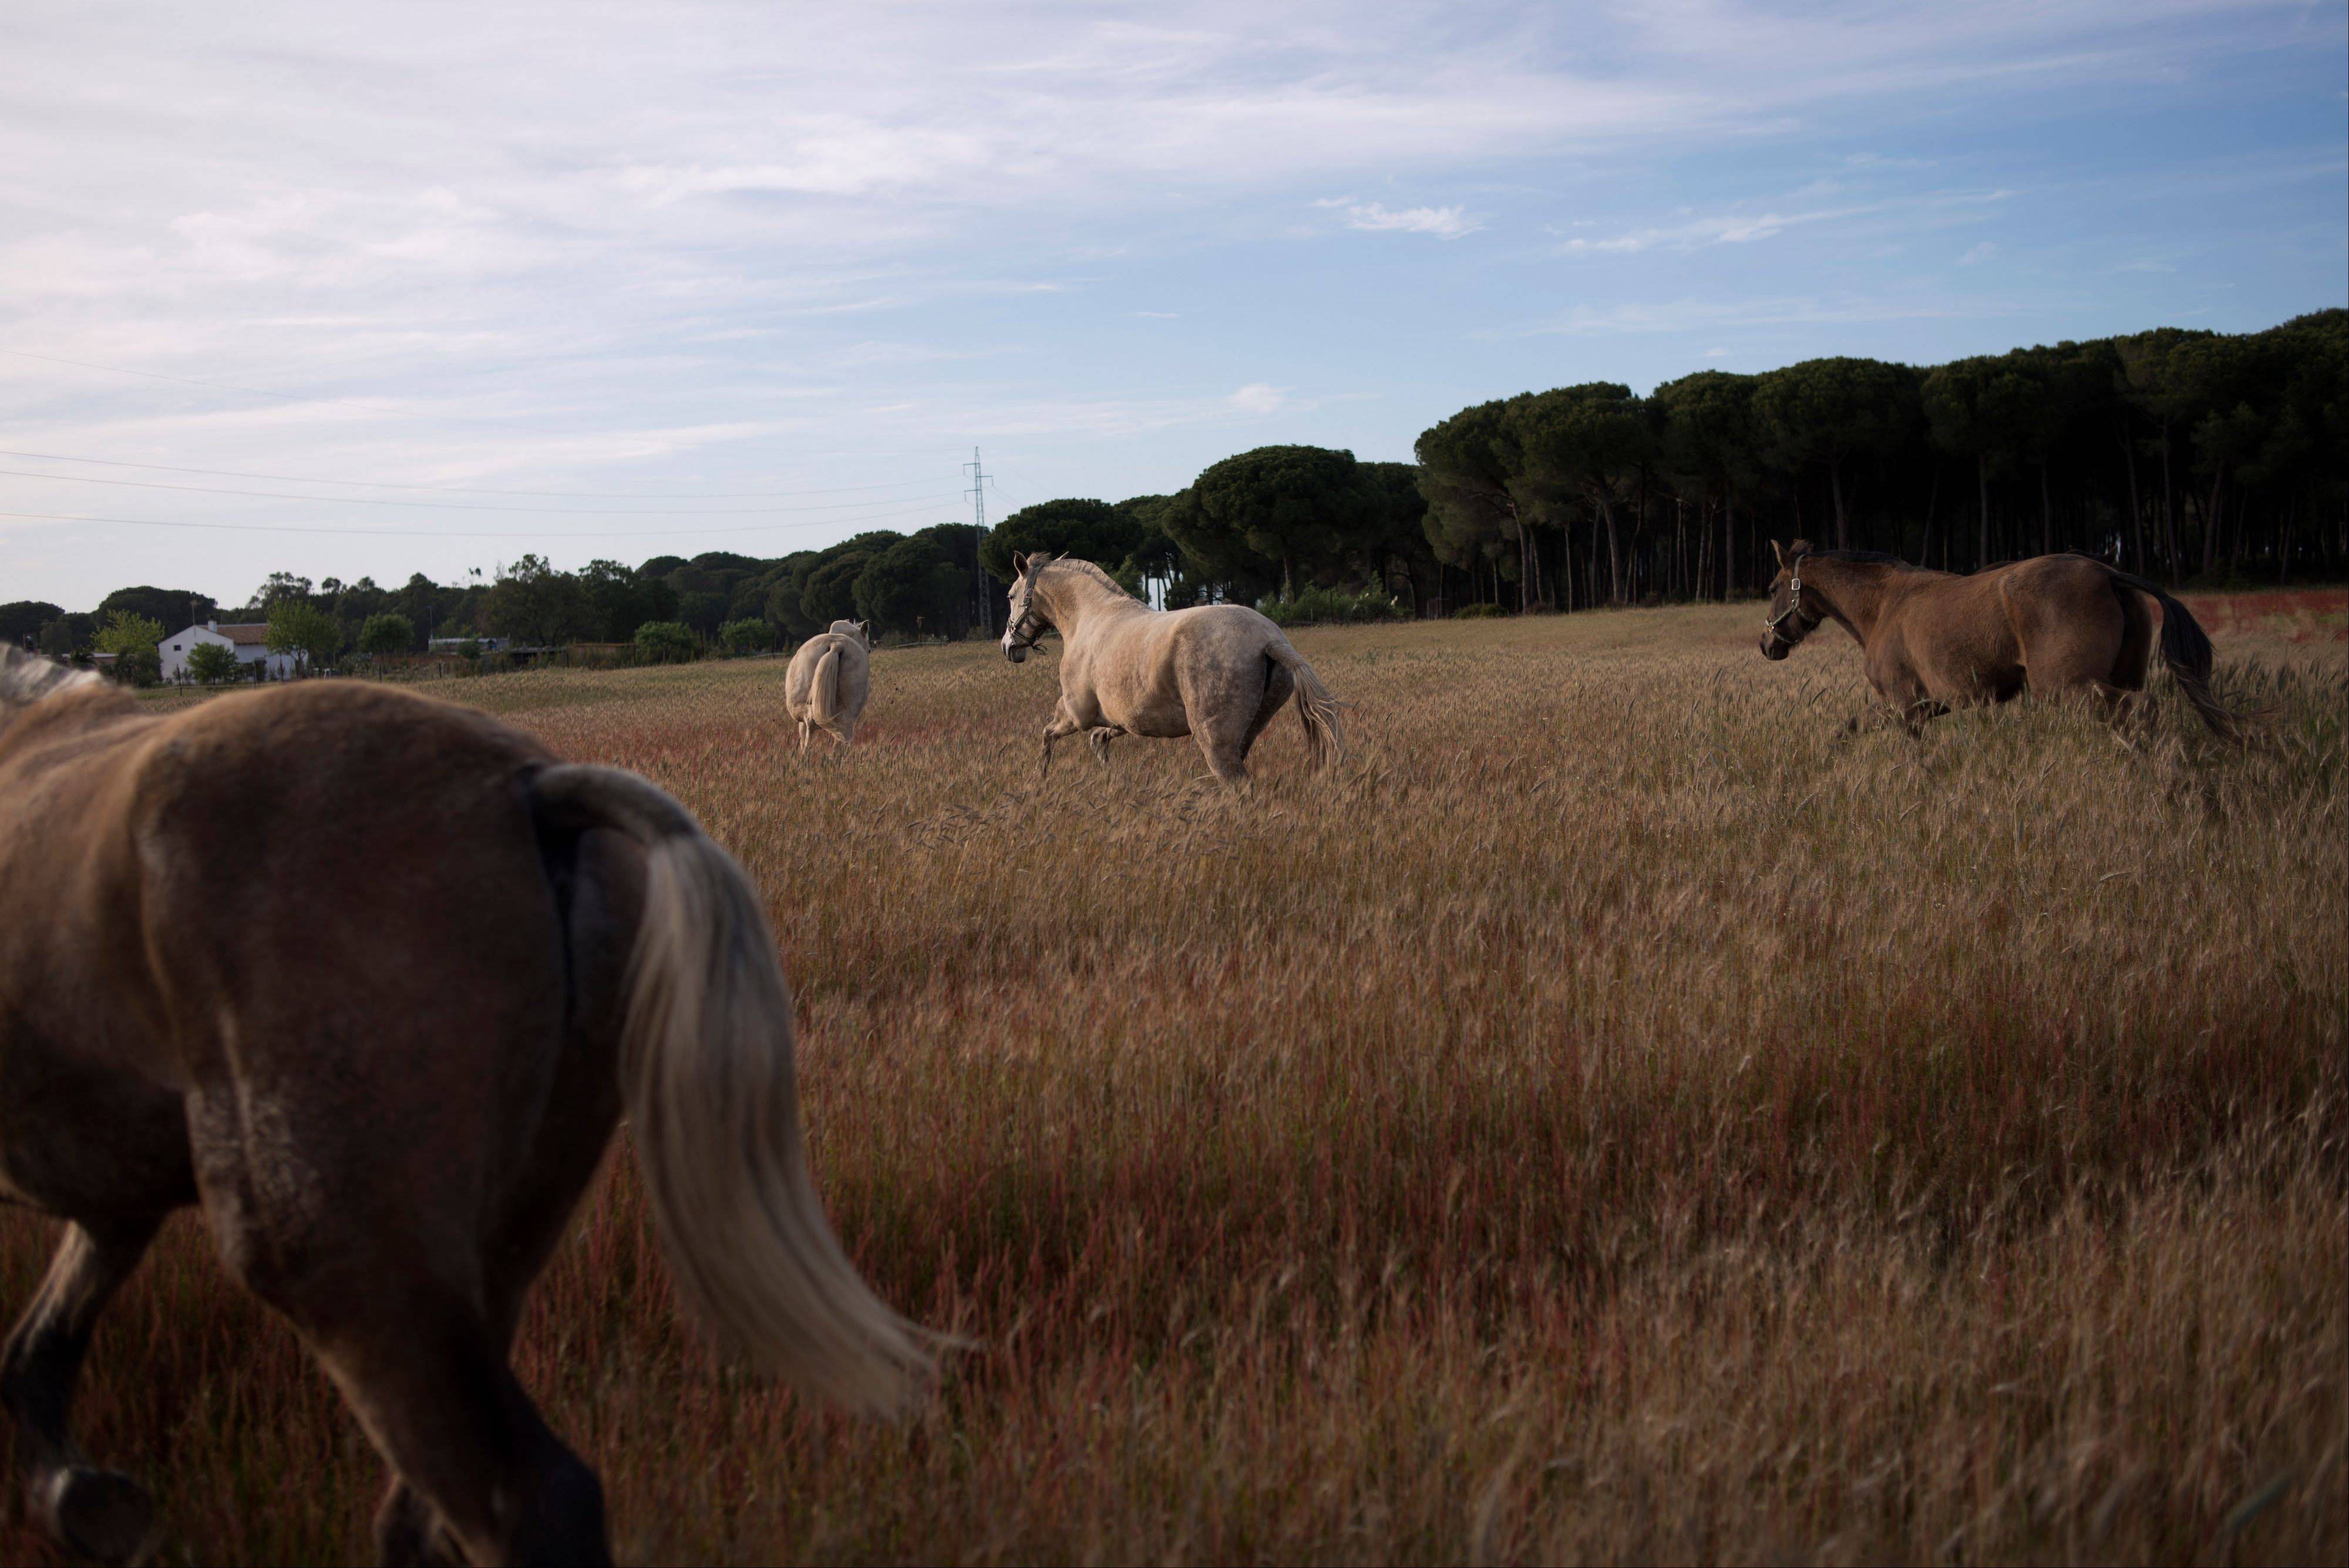 """Pura Raza Espanola"" or Pure Spanish Breed mares belonging to breeder Francisco Jose Rodriguez at ""La Yeguada de Cuatro Vientos"" ranch in Almonte, in the southern Spanish region of Andalusia. Barring an unlikely reprieve, Mesa' purebreds will be turned into horse meat for export come July."